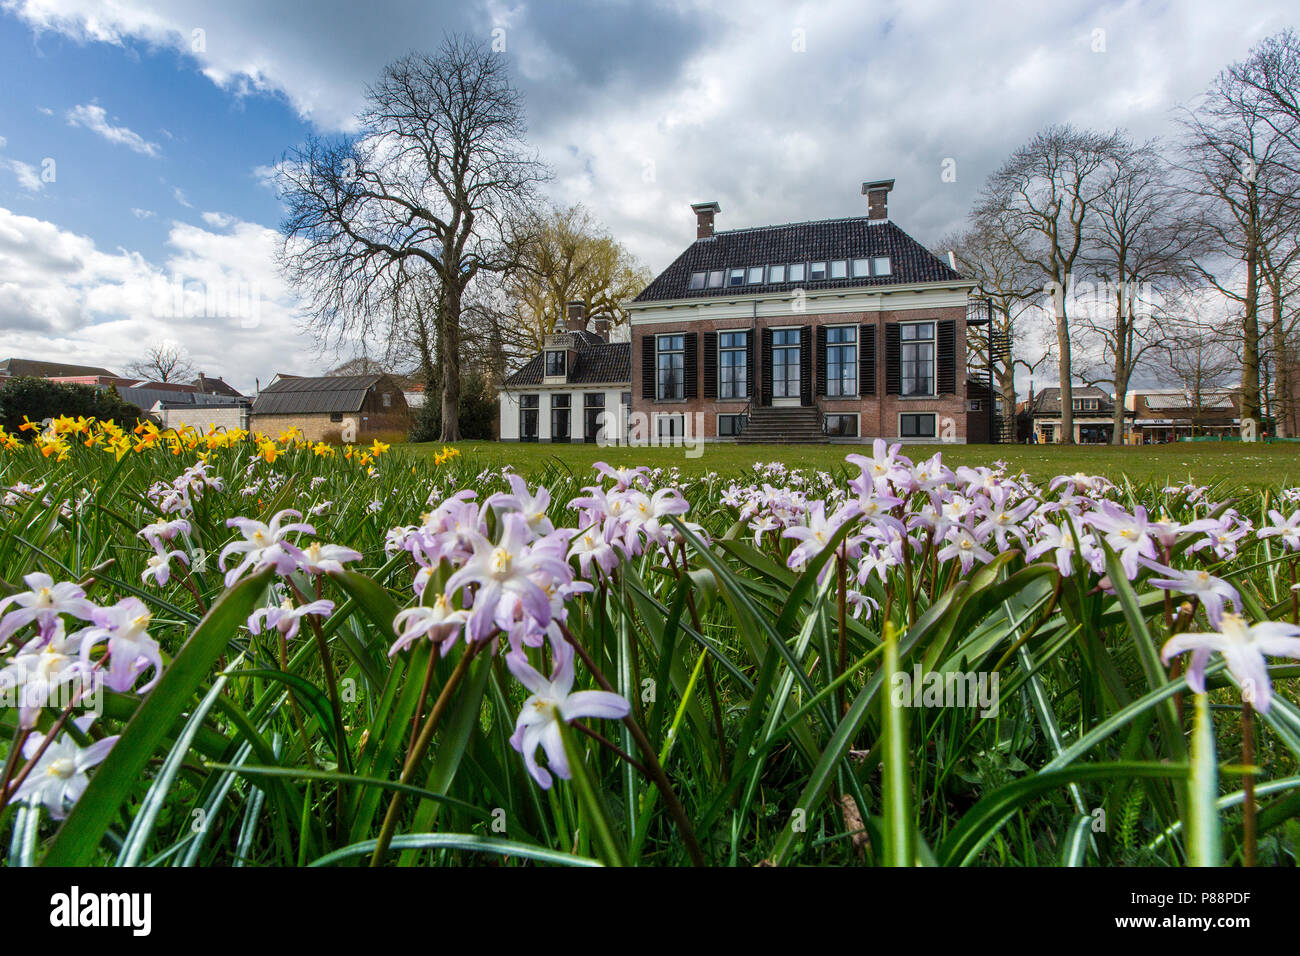 Chionodoxa Forbesii Bij Land Landhuis Lindenoord Stock Photo